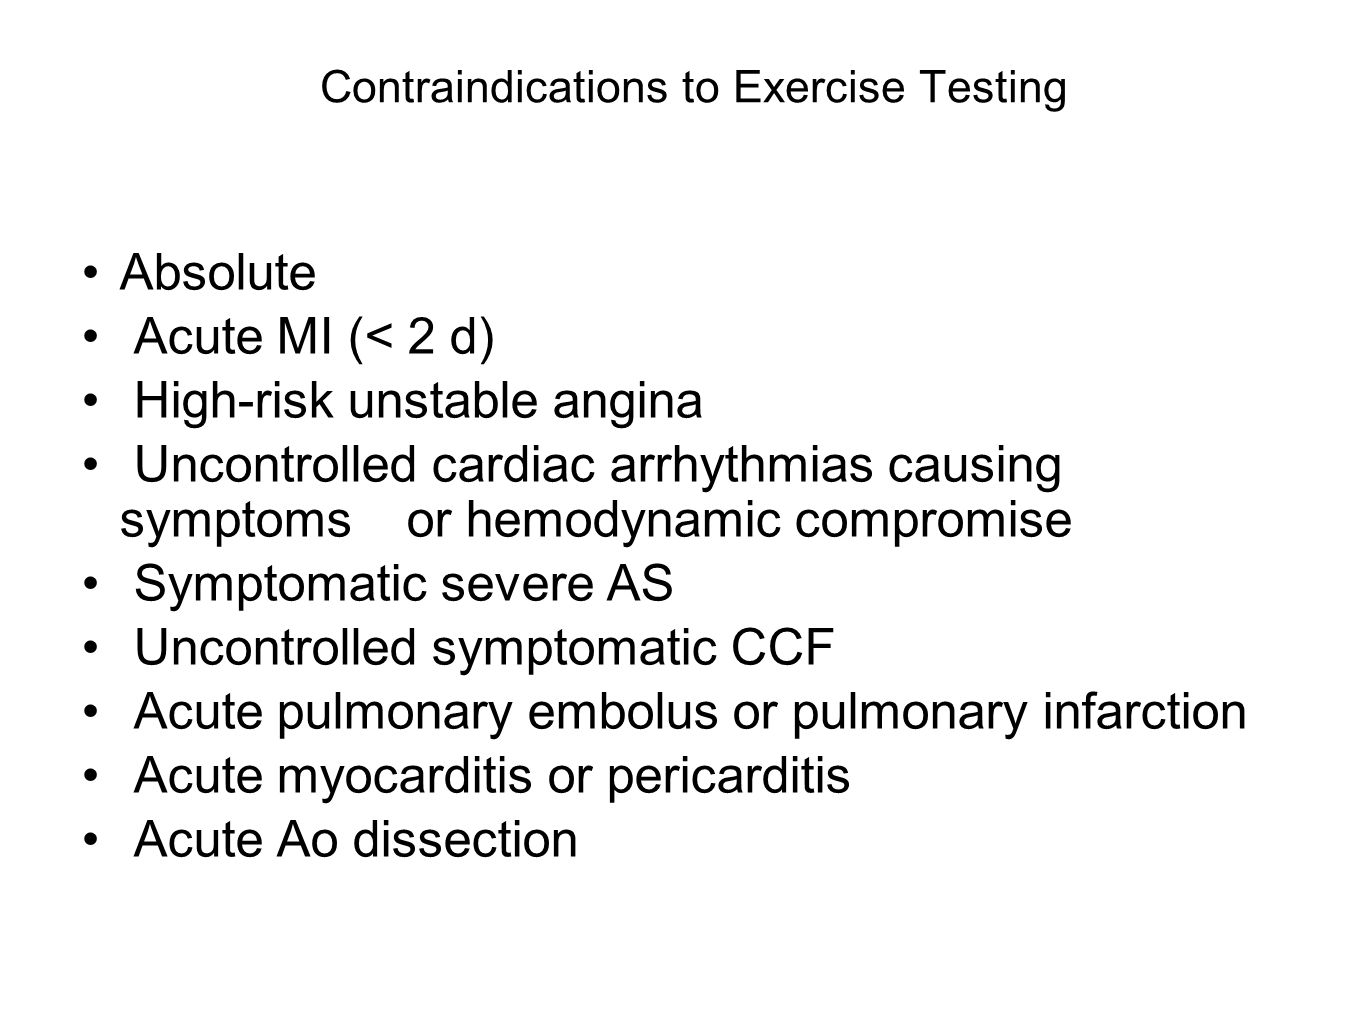 Contraindications to Exercise Testing Absolute Acute MI (< 2 d) High-risk unstable angina Uncontrolled cardiac arrhythmias causing symptoms or hemodyn